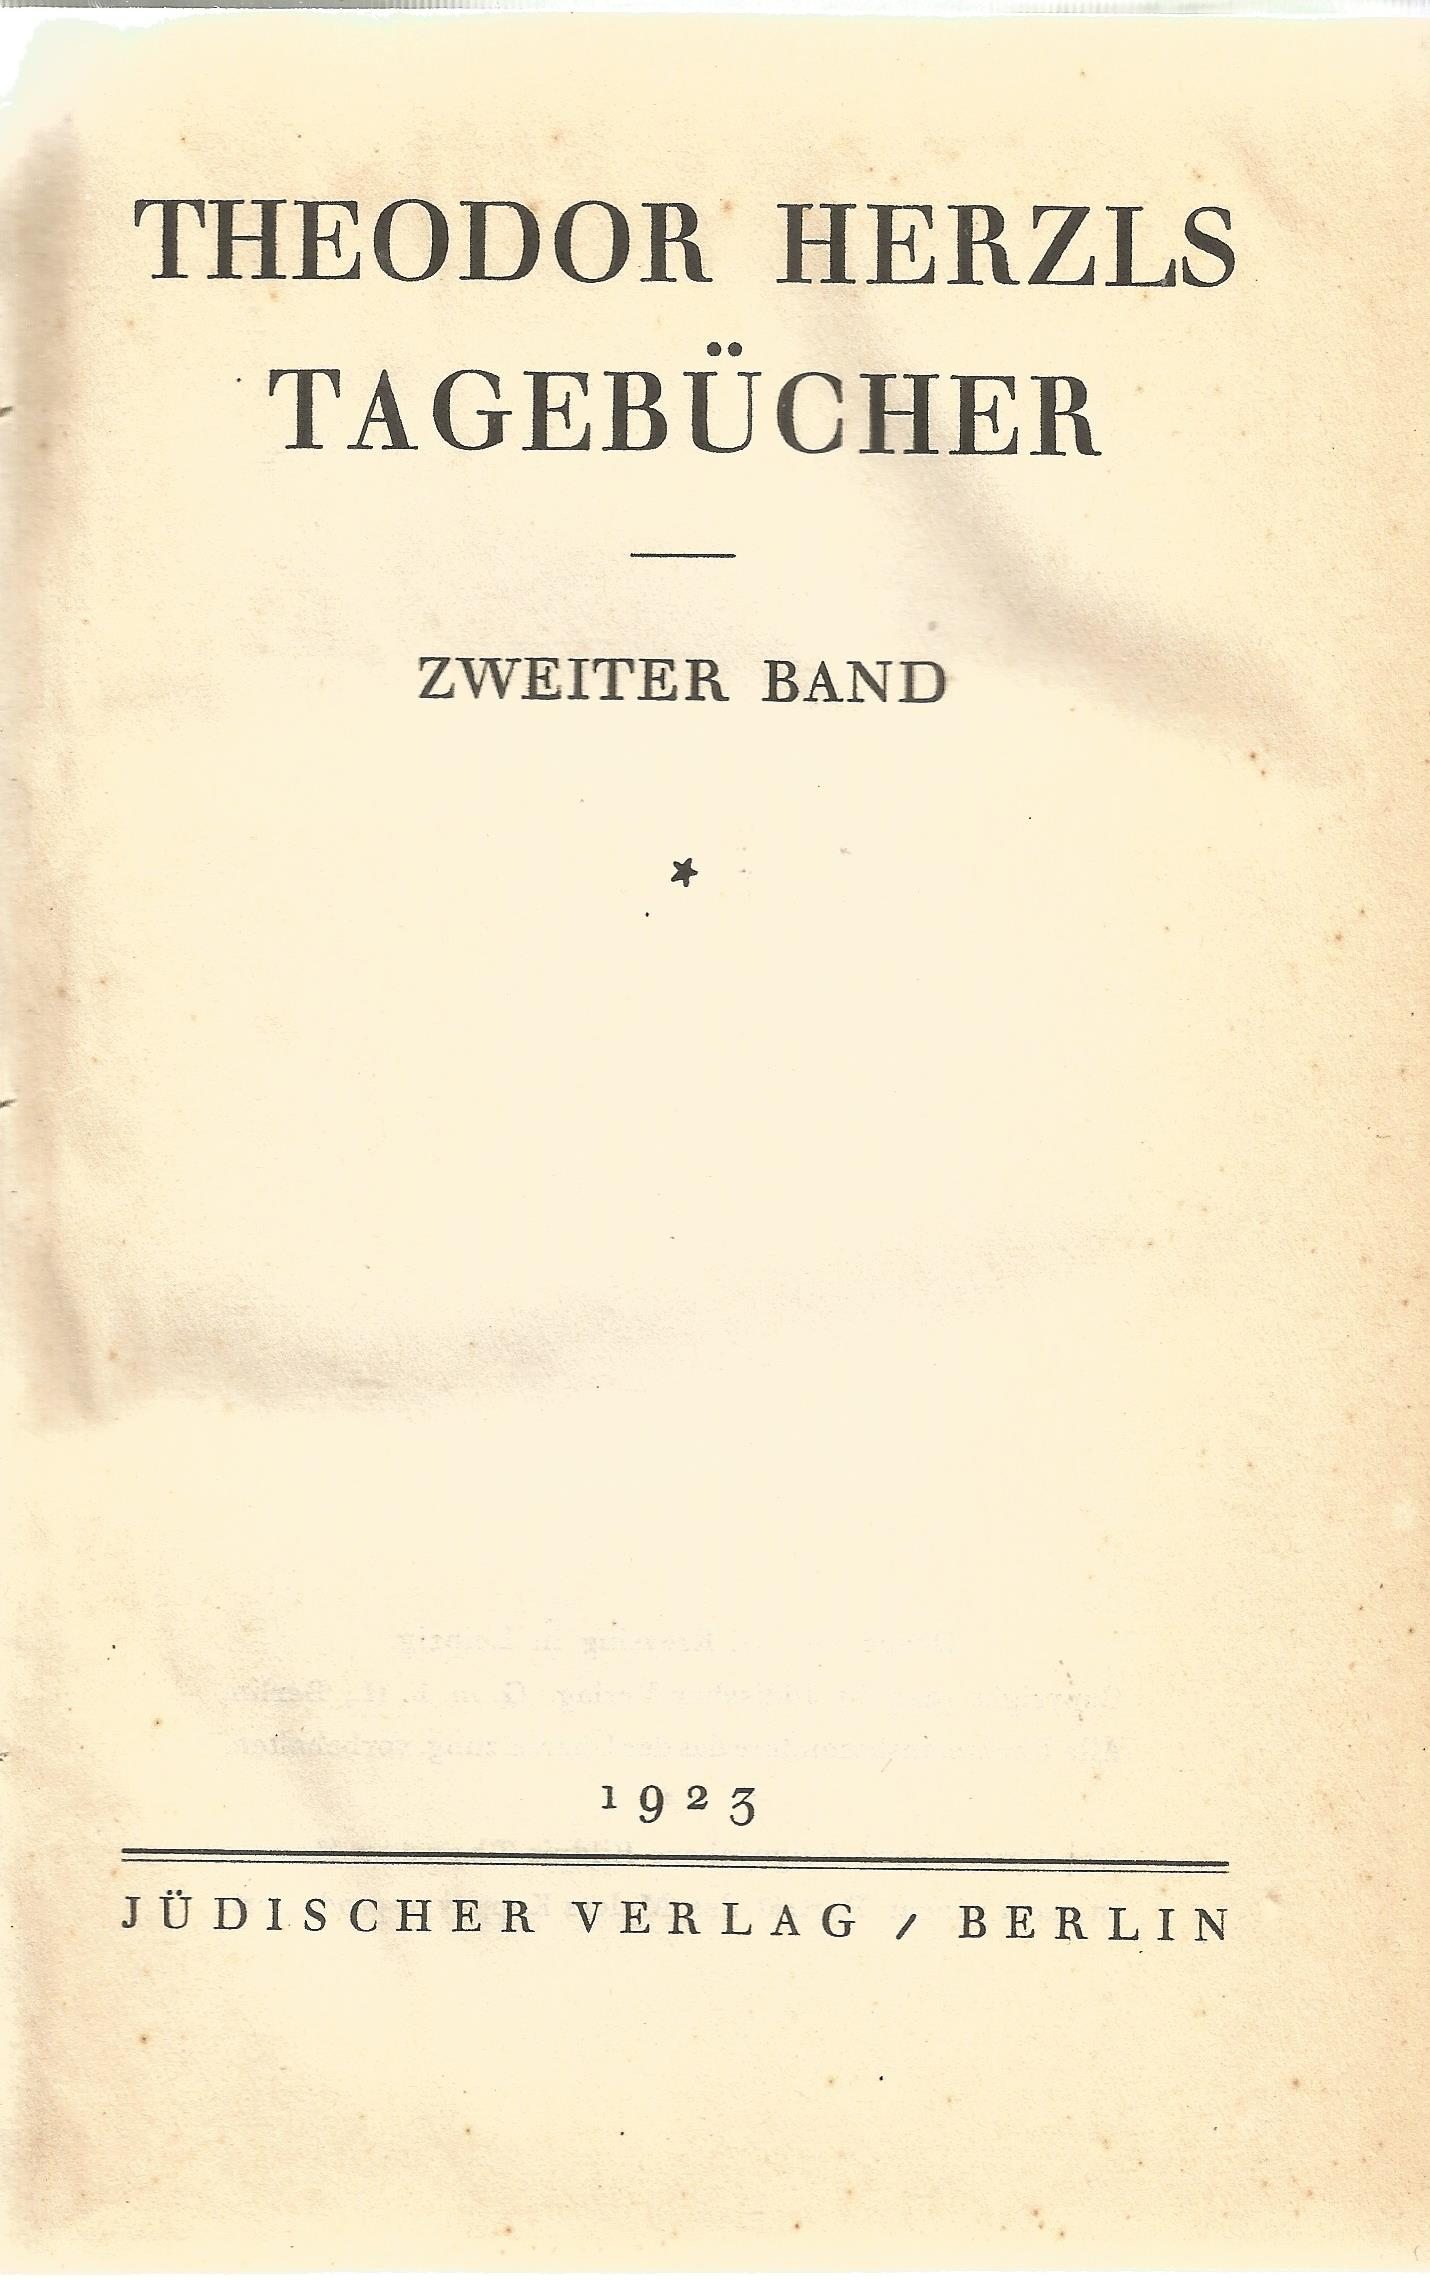 Collection of Volumes 1,2,3 Theodor Herzls, Tagebucher. Hardback book collection, Printed in 1922. - Image 3 of 4